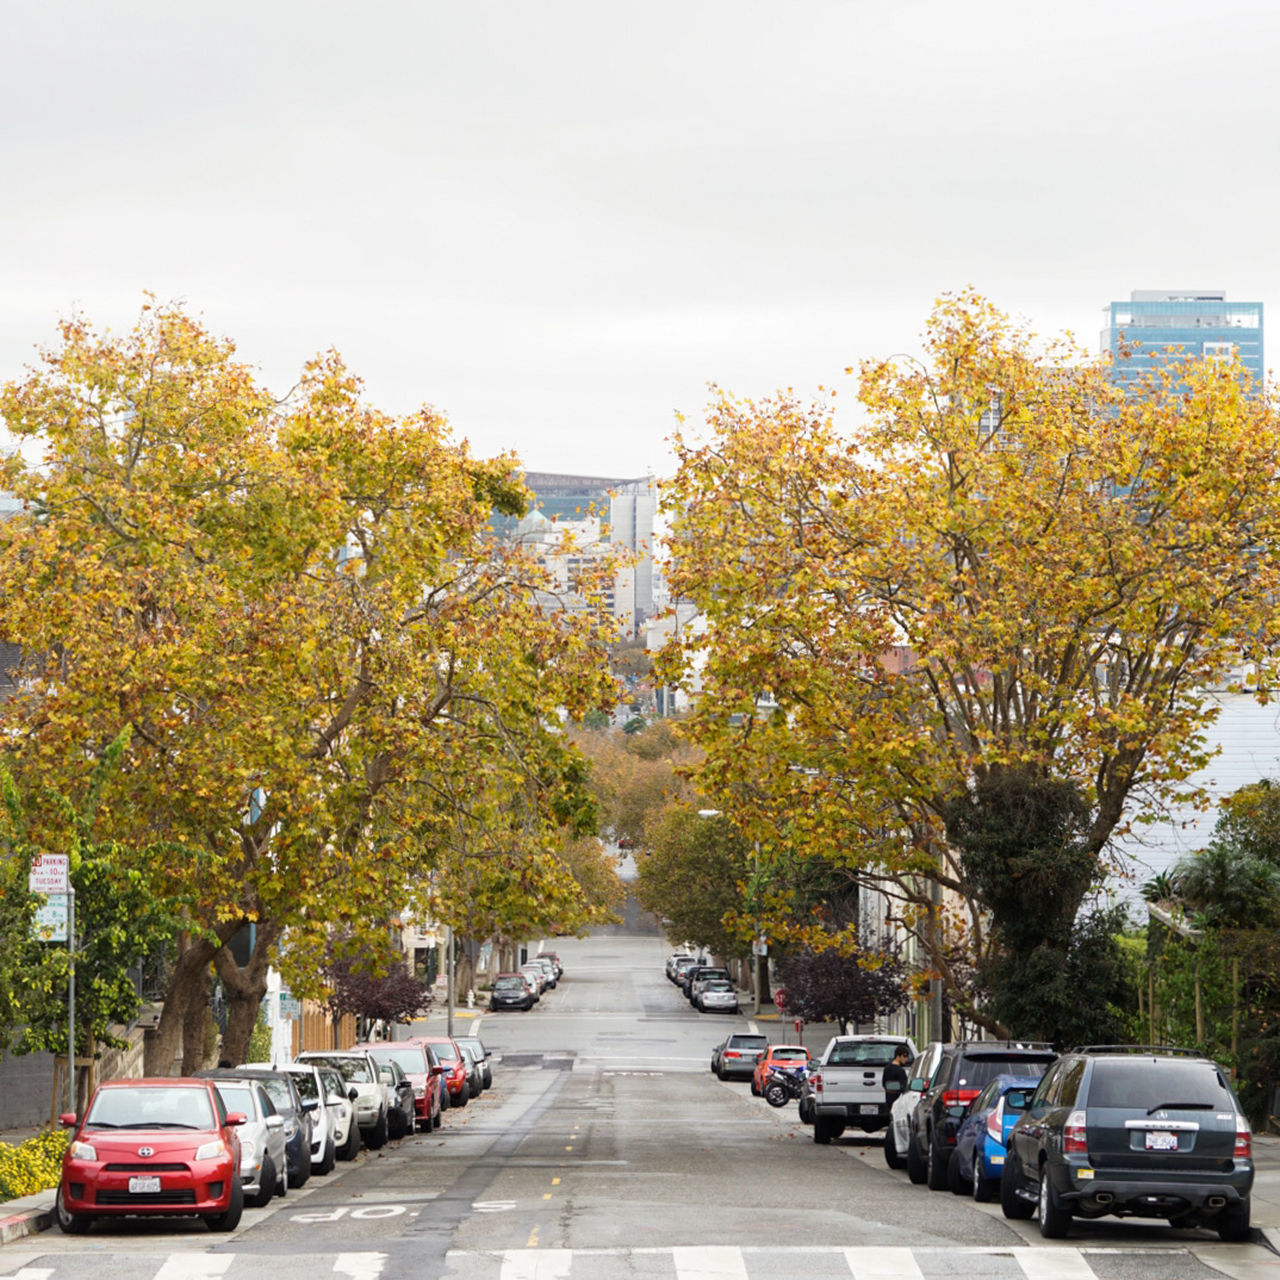 car, tree, transportation, land vehicle, street, change, road, mode of transport, autumn, day, outdoors, no people, architecture, nature, city, sky